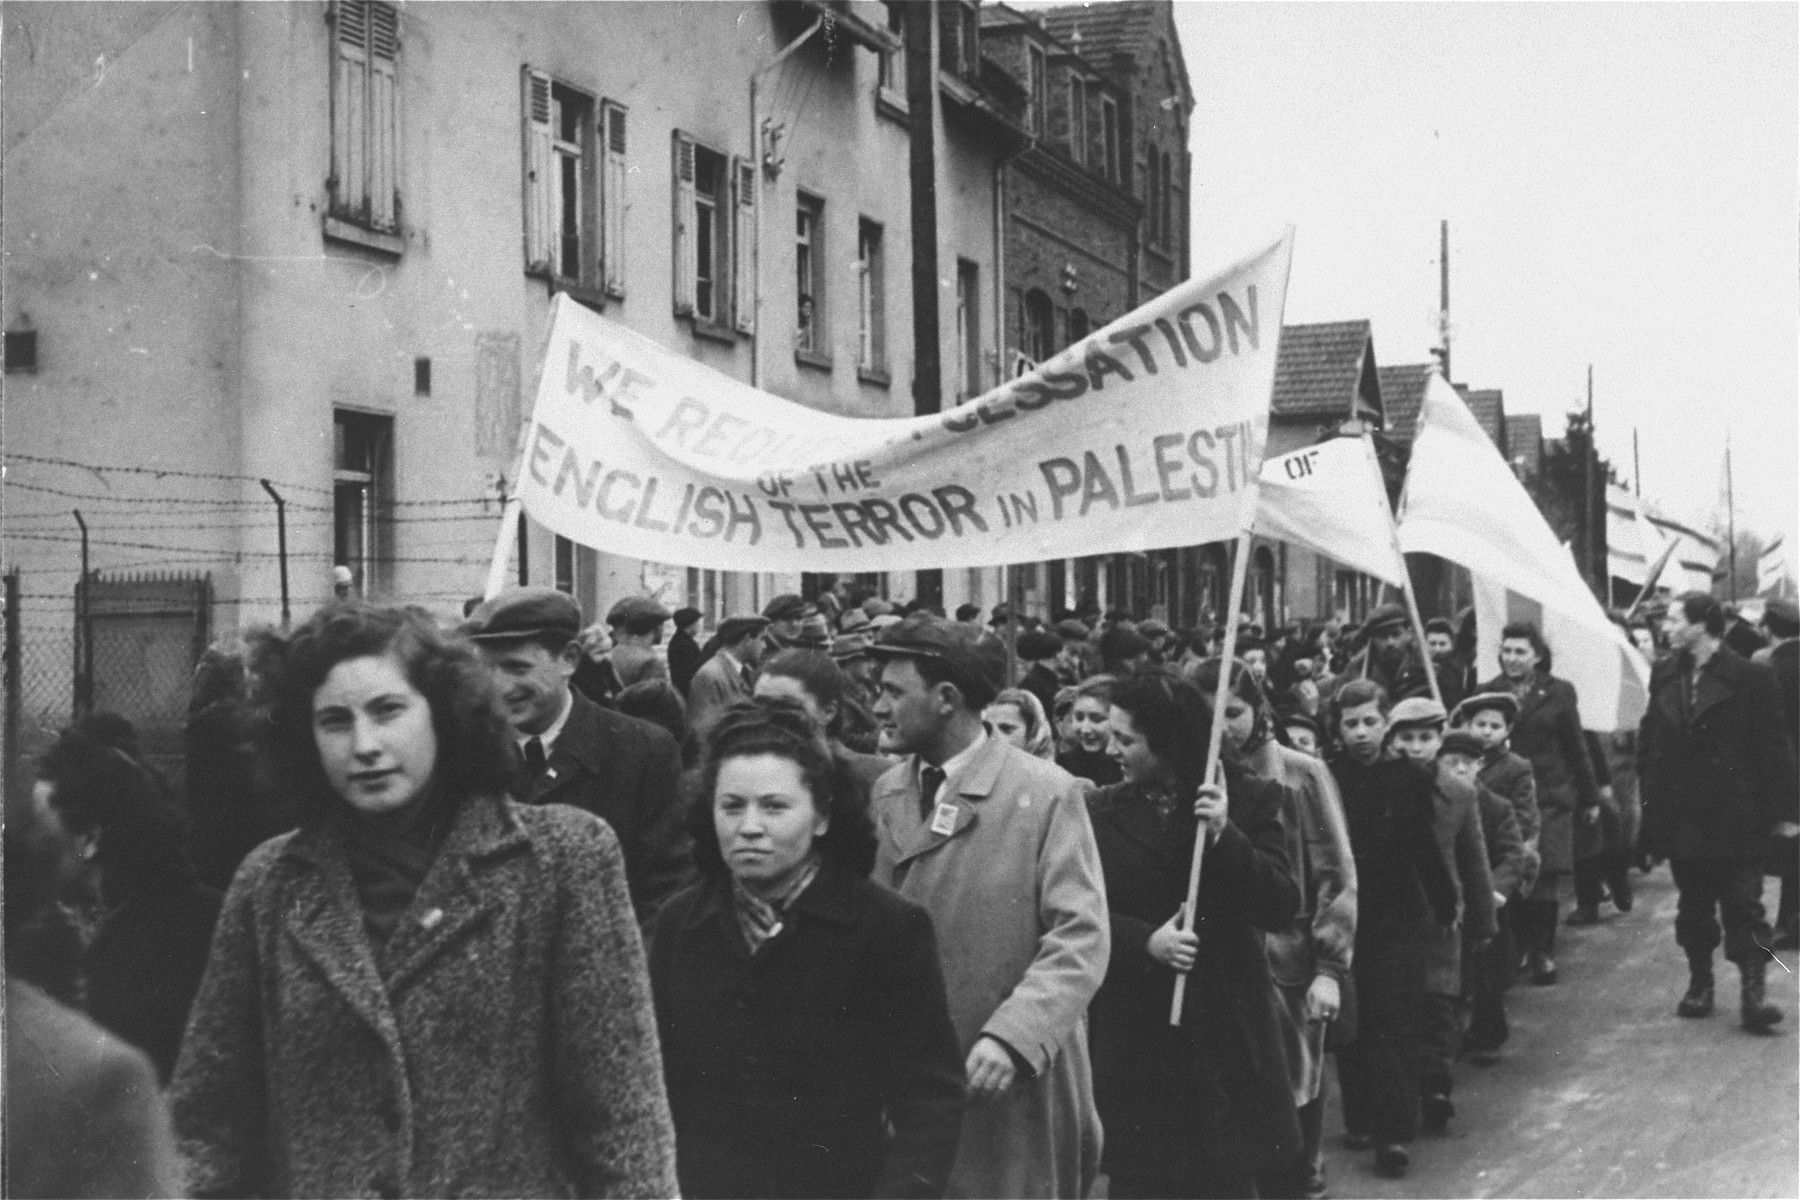 Men and women in the Zeilsheim displaced persons' camp carrying banners march in a demonstration for free immigration to Palestine.